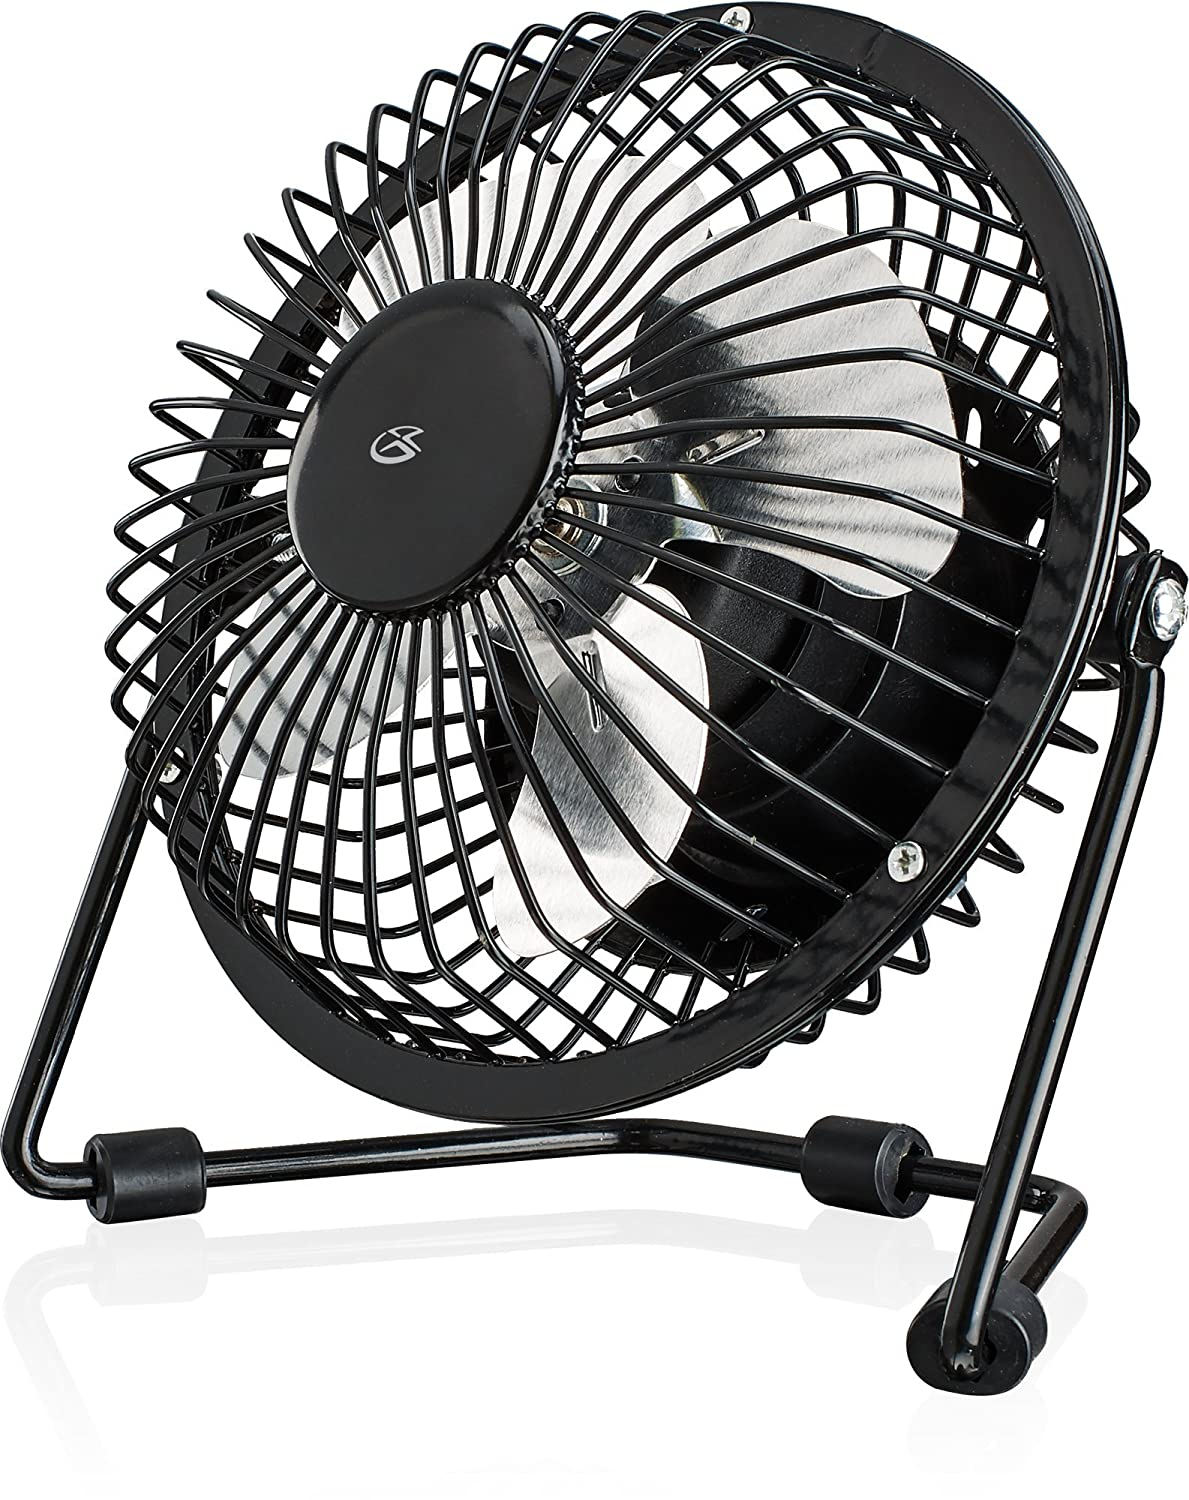 "GPX Mini 4"" USB Personal Fan, Compatible with Computers, Laptops, Portable Chargers, Black (AU25B)"